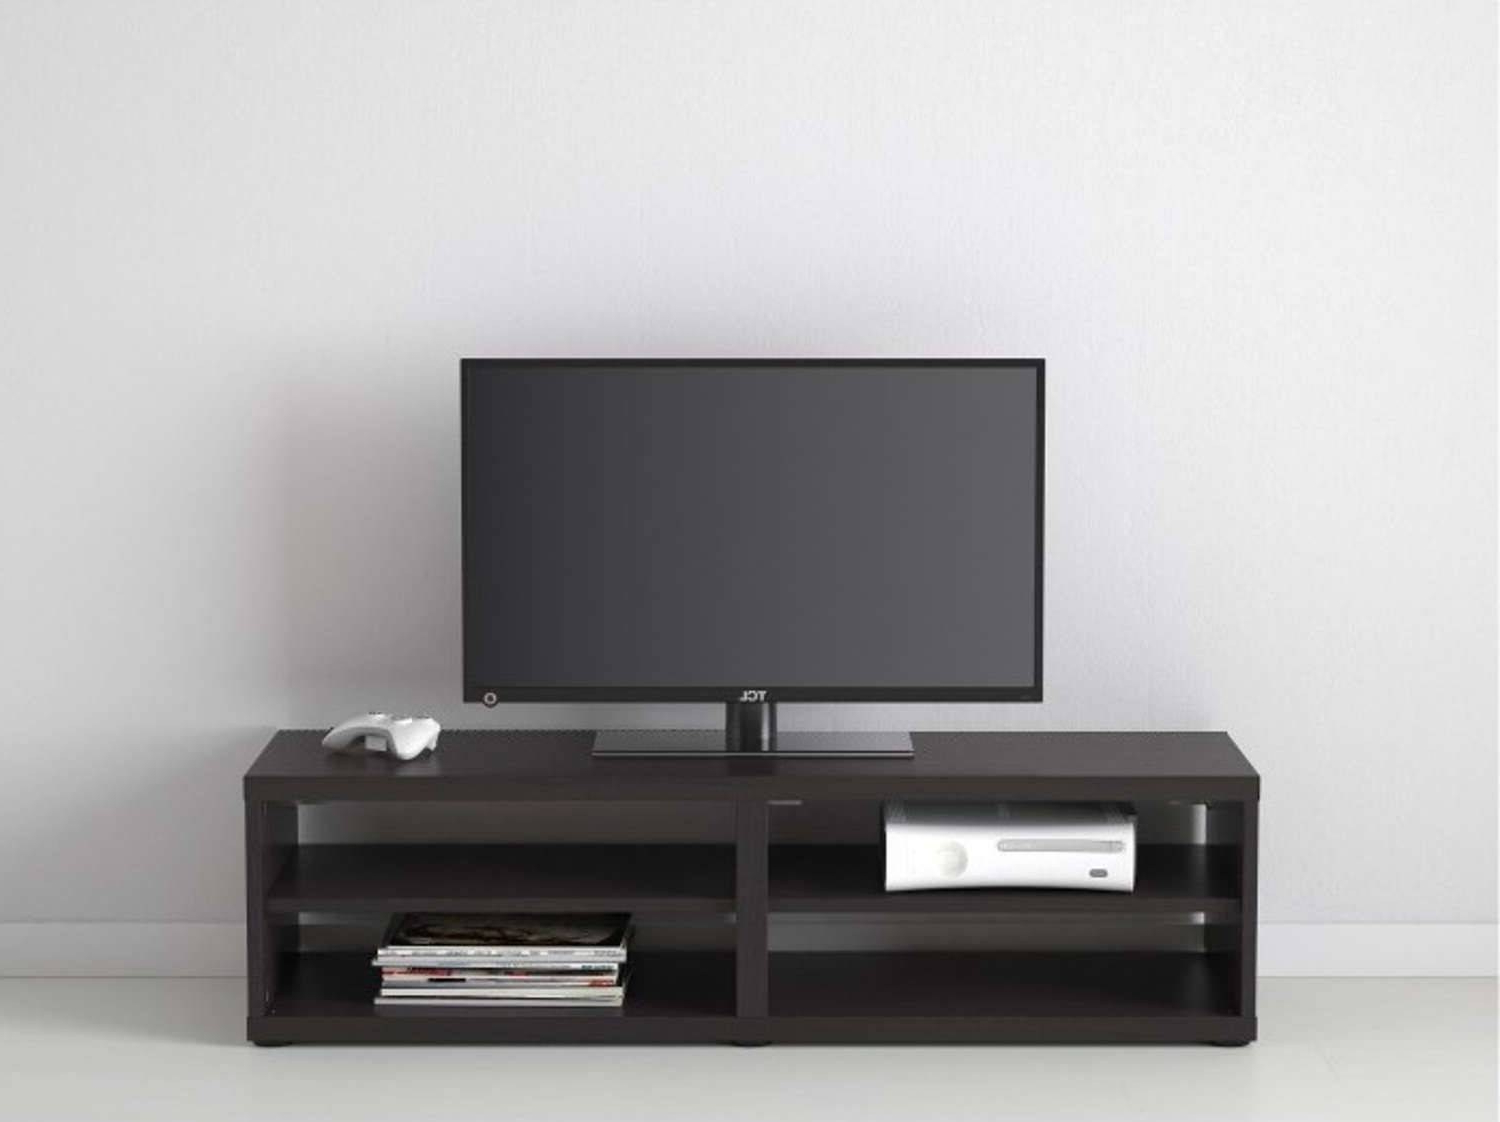 Small Black Tv Cabinets Pertaining To Recent Tv Stand Clearance Black 55 Inch Big Lots Stands Target Small With (View 18 of 20)